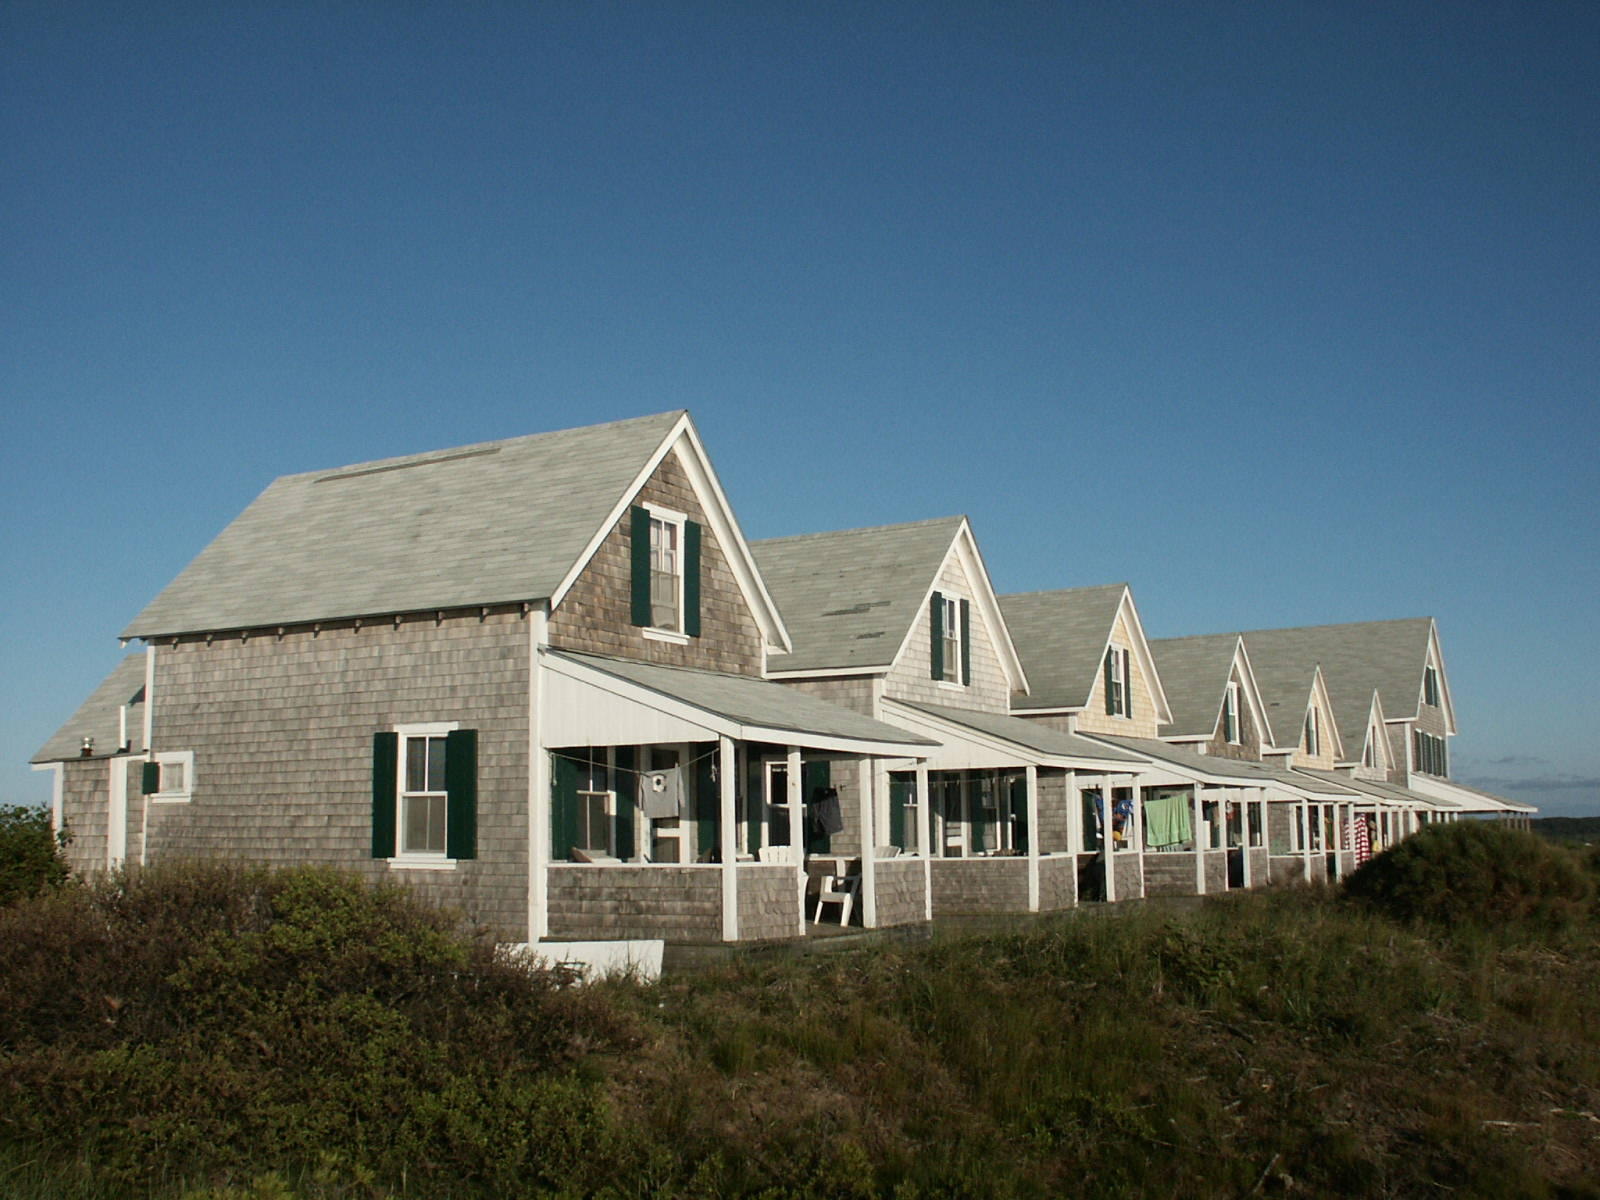 docks cape homes cottage cottages main rental properties robert paul cod osterville beach with ma street